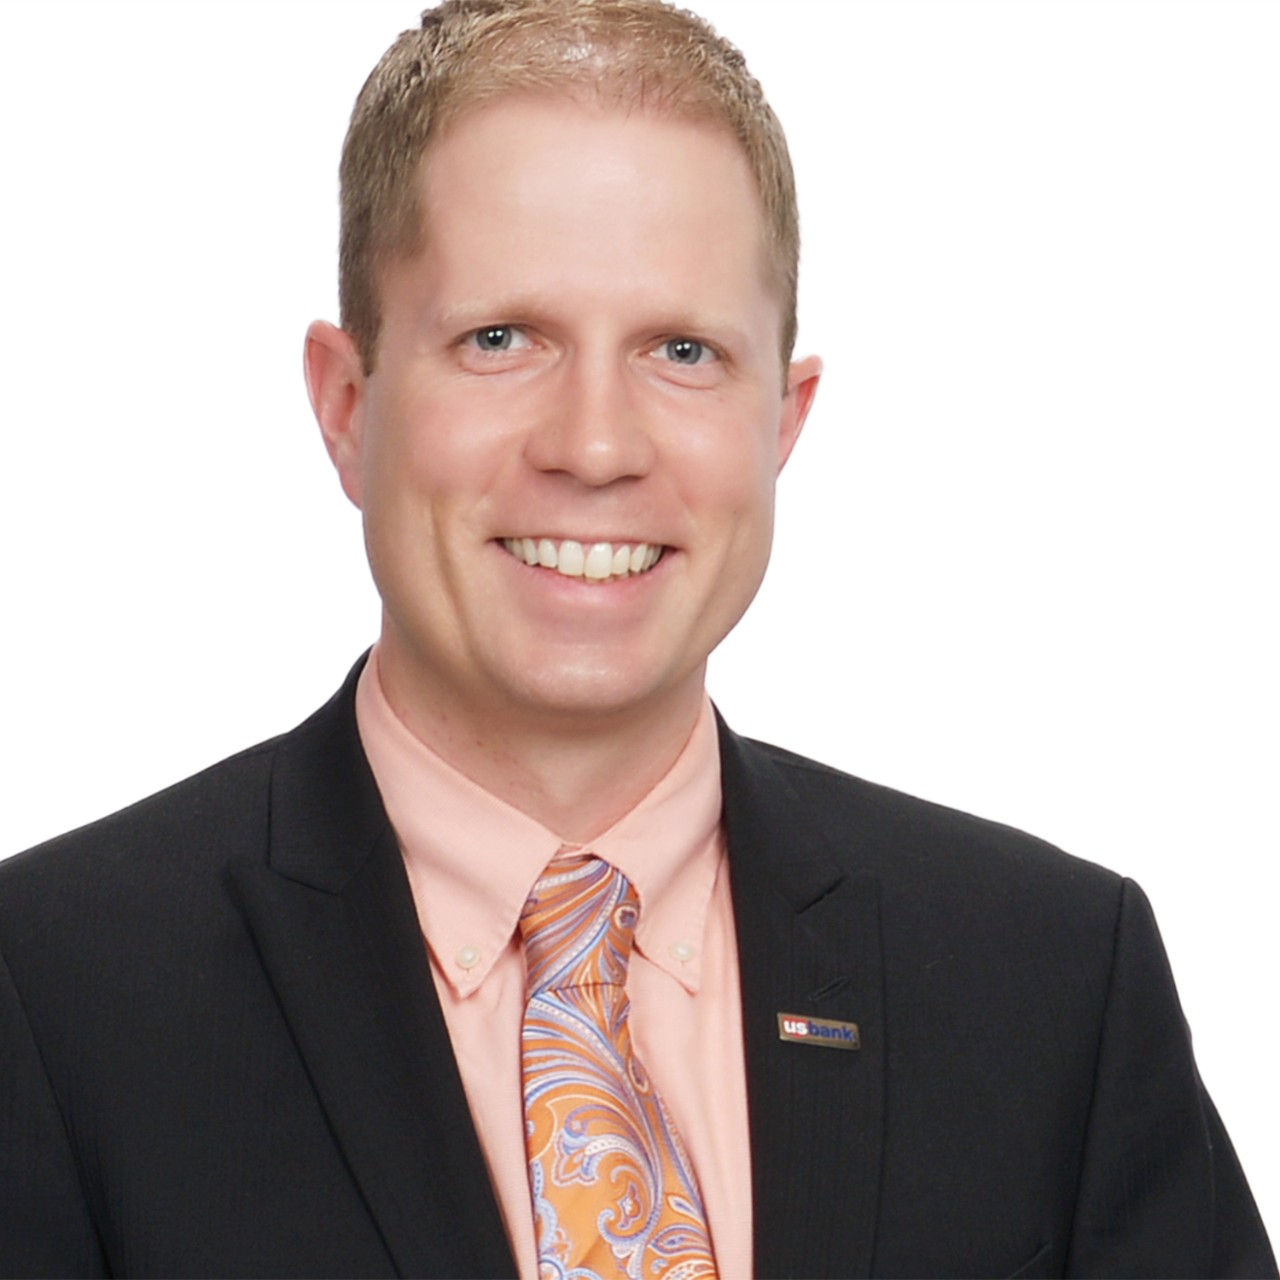 Chad Erickson | Private Banker | Sioux Falls, SD | U.S. Bancorp Wealth Management